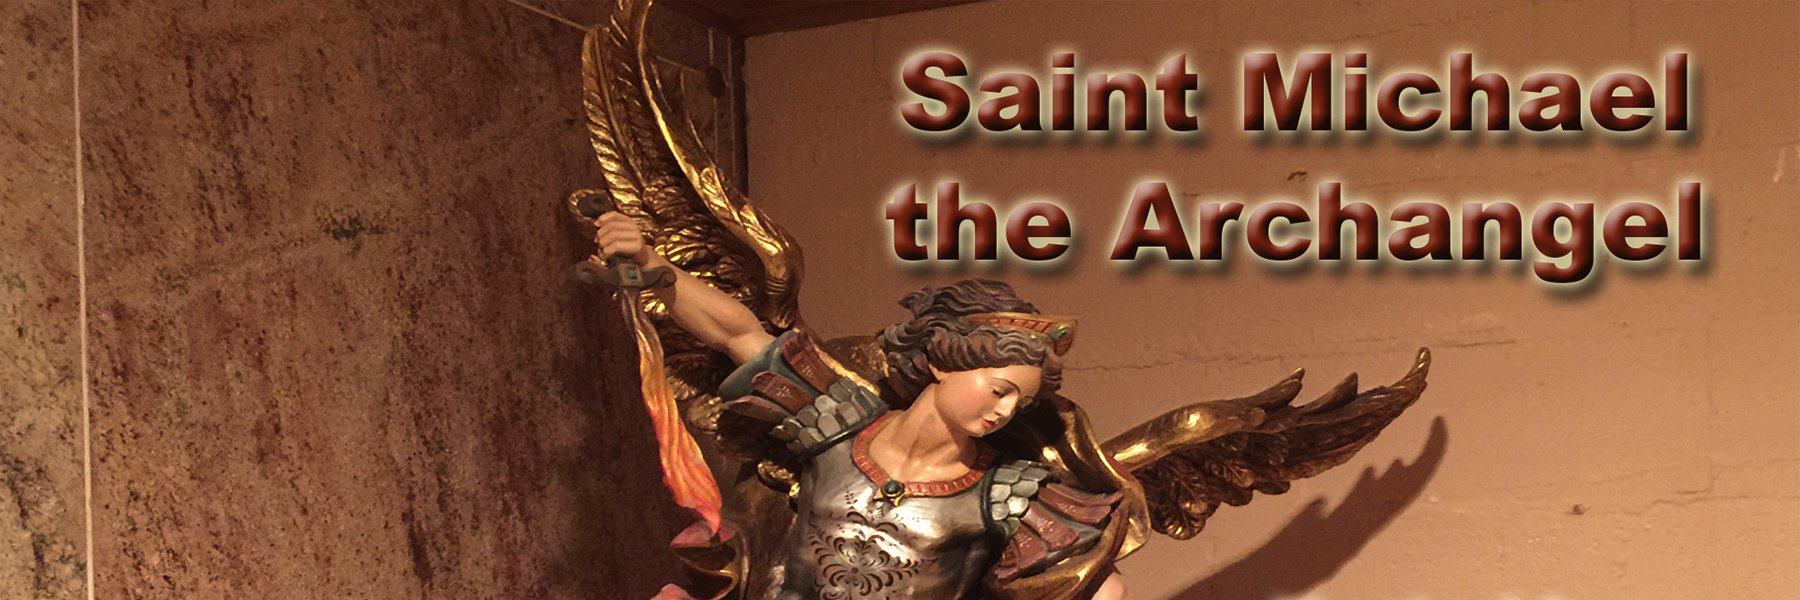 Saint Michael the Archangel defend us in the battle!